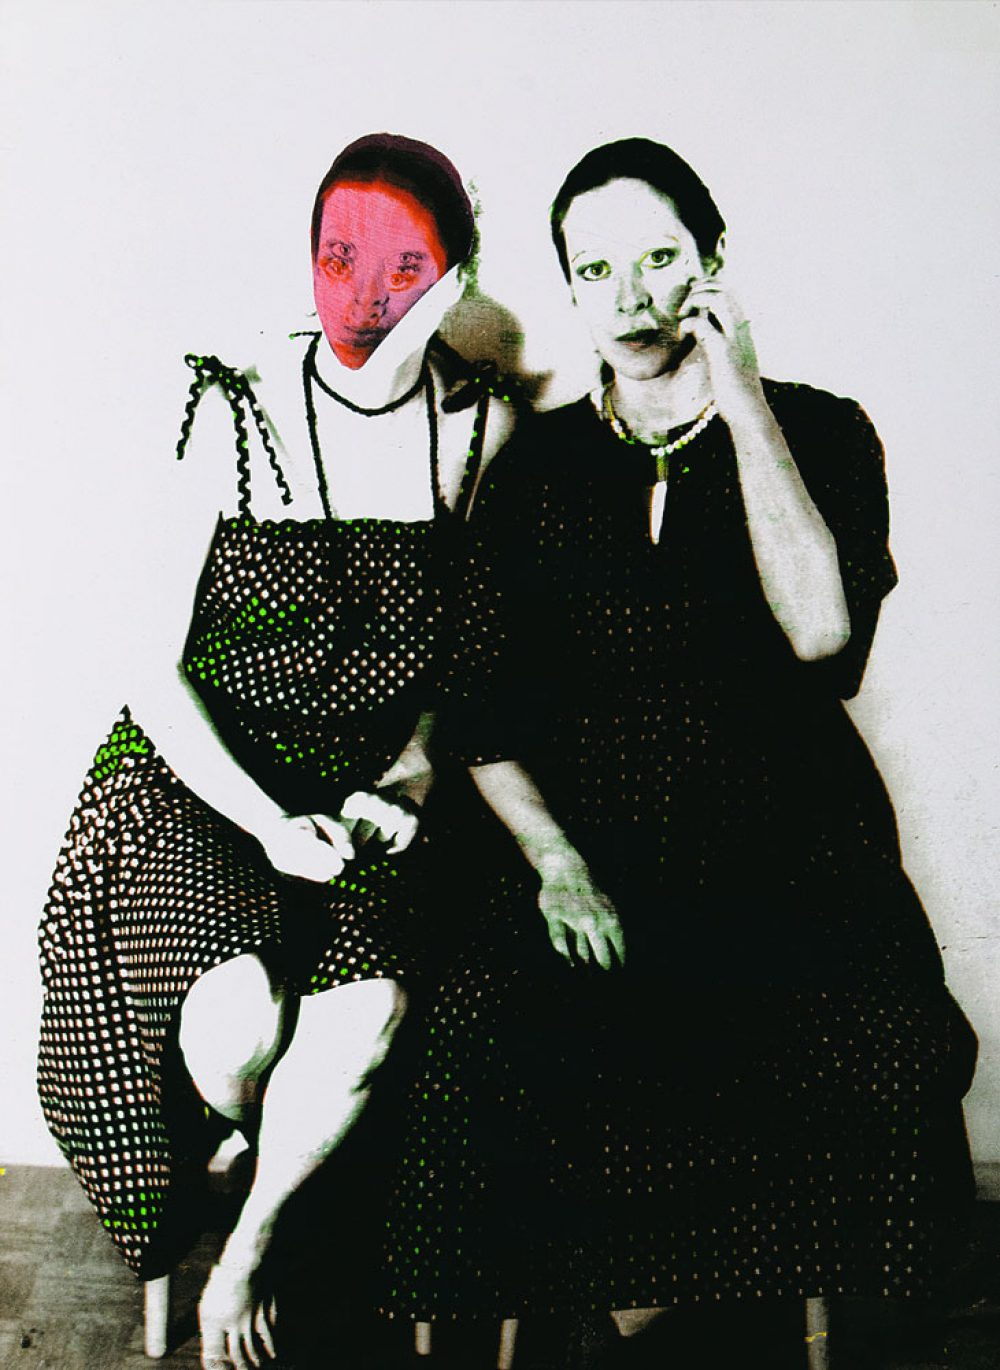 Relative Similarities IVX - Twins by choice (1981), Mixed Media on paper, 104 x 74 cm